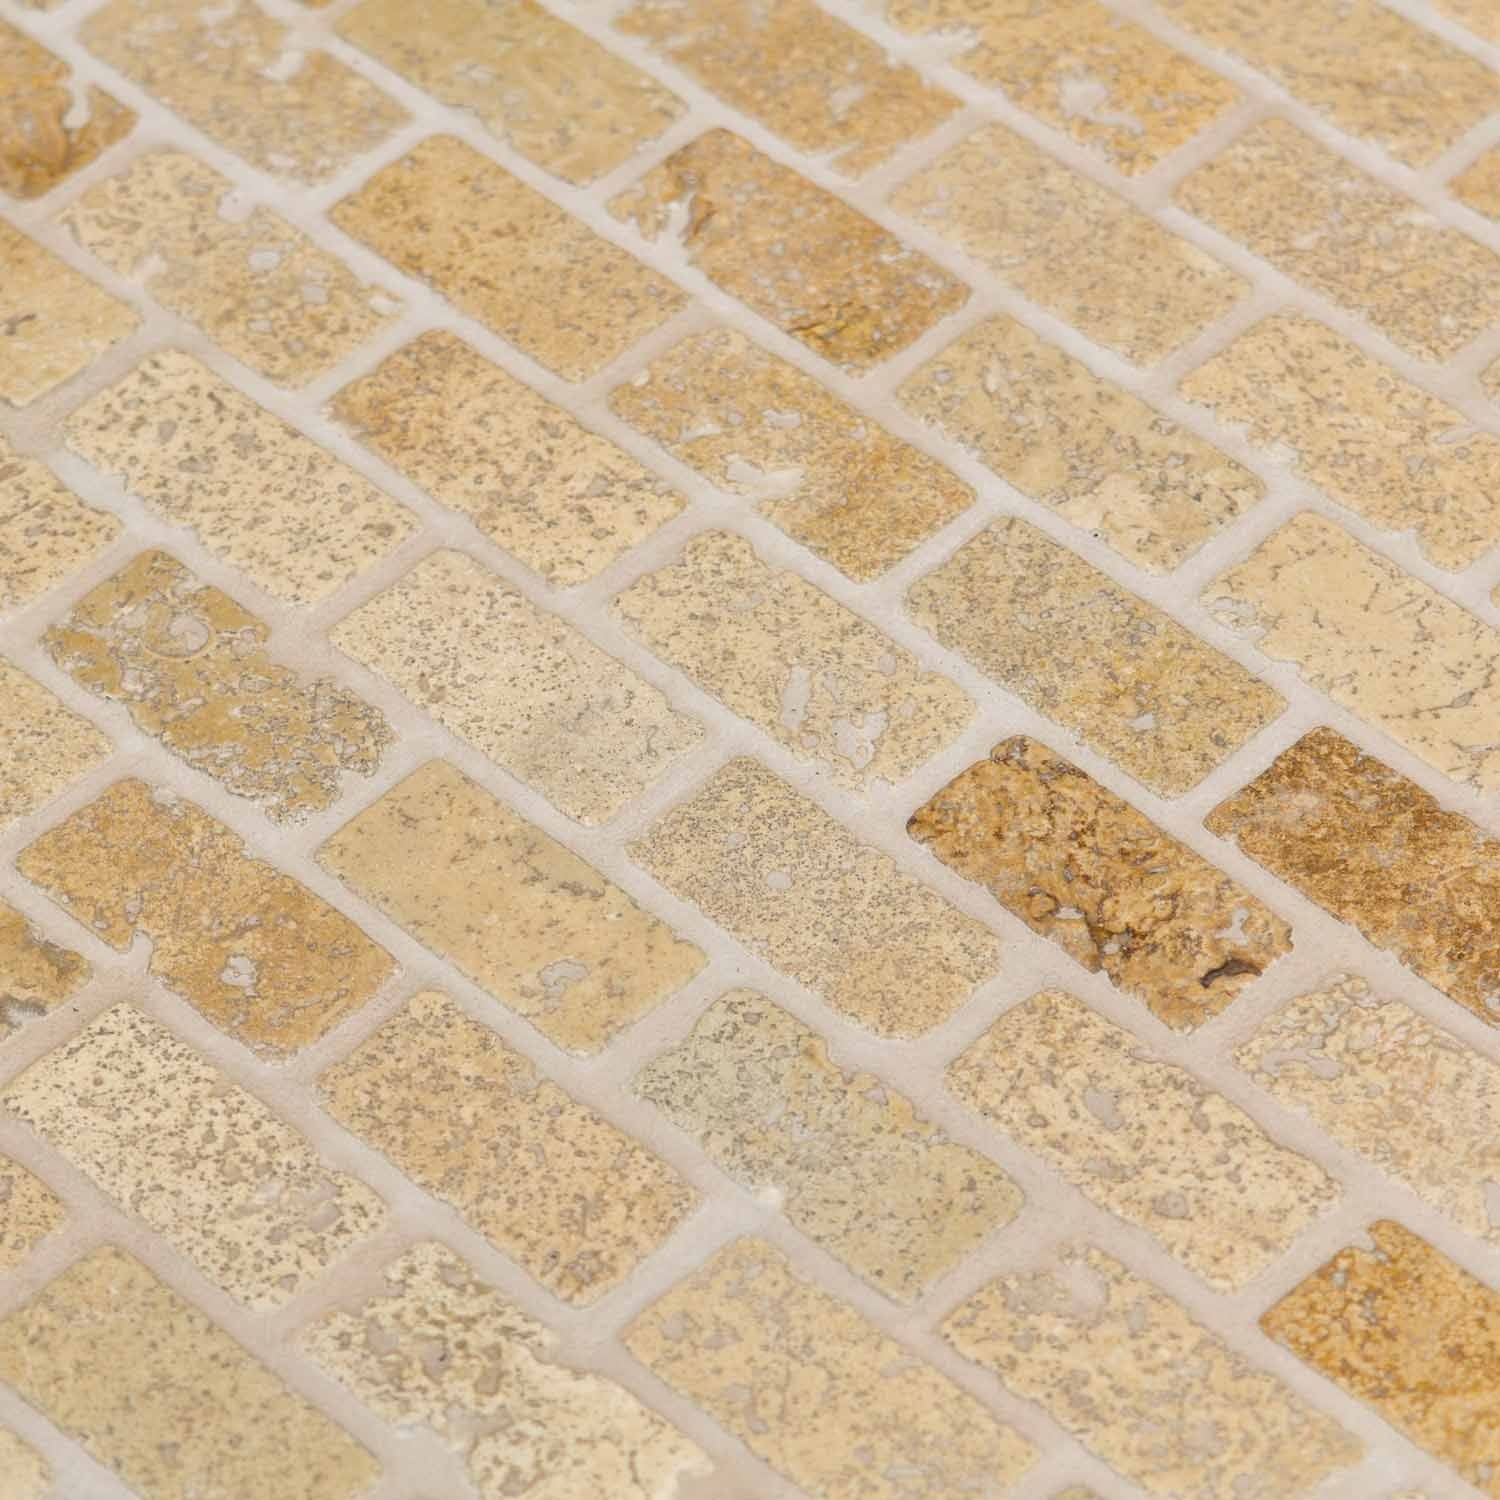 Mosaïque travertin mix noisette lamelles